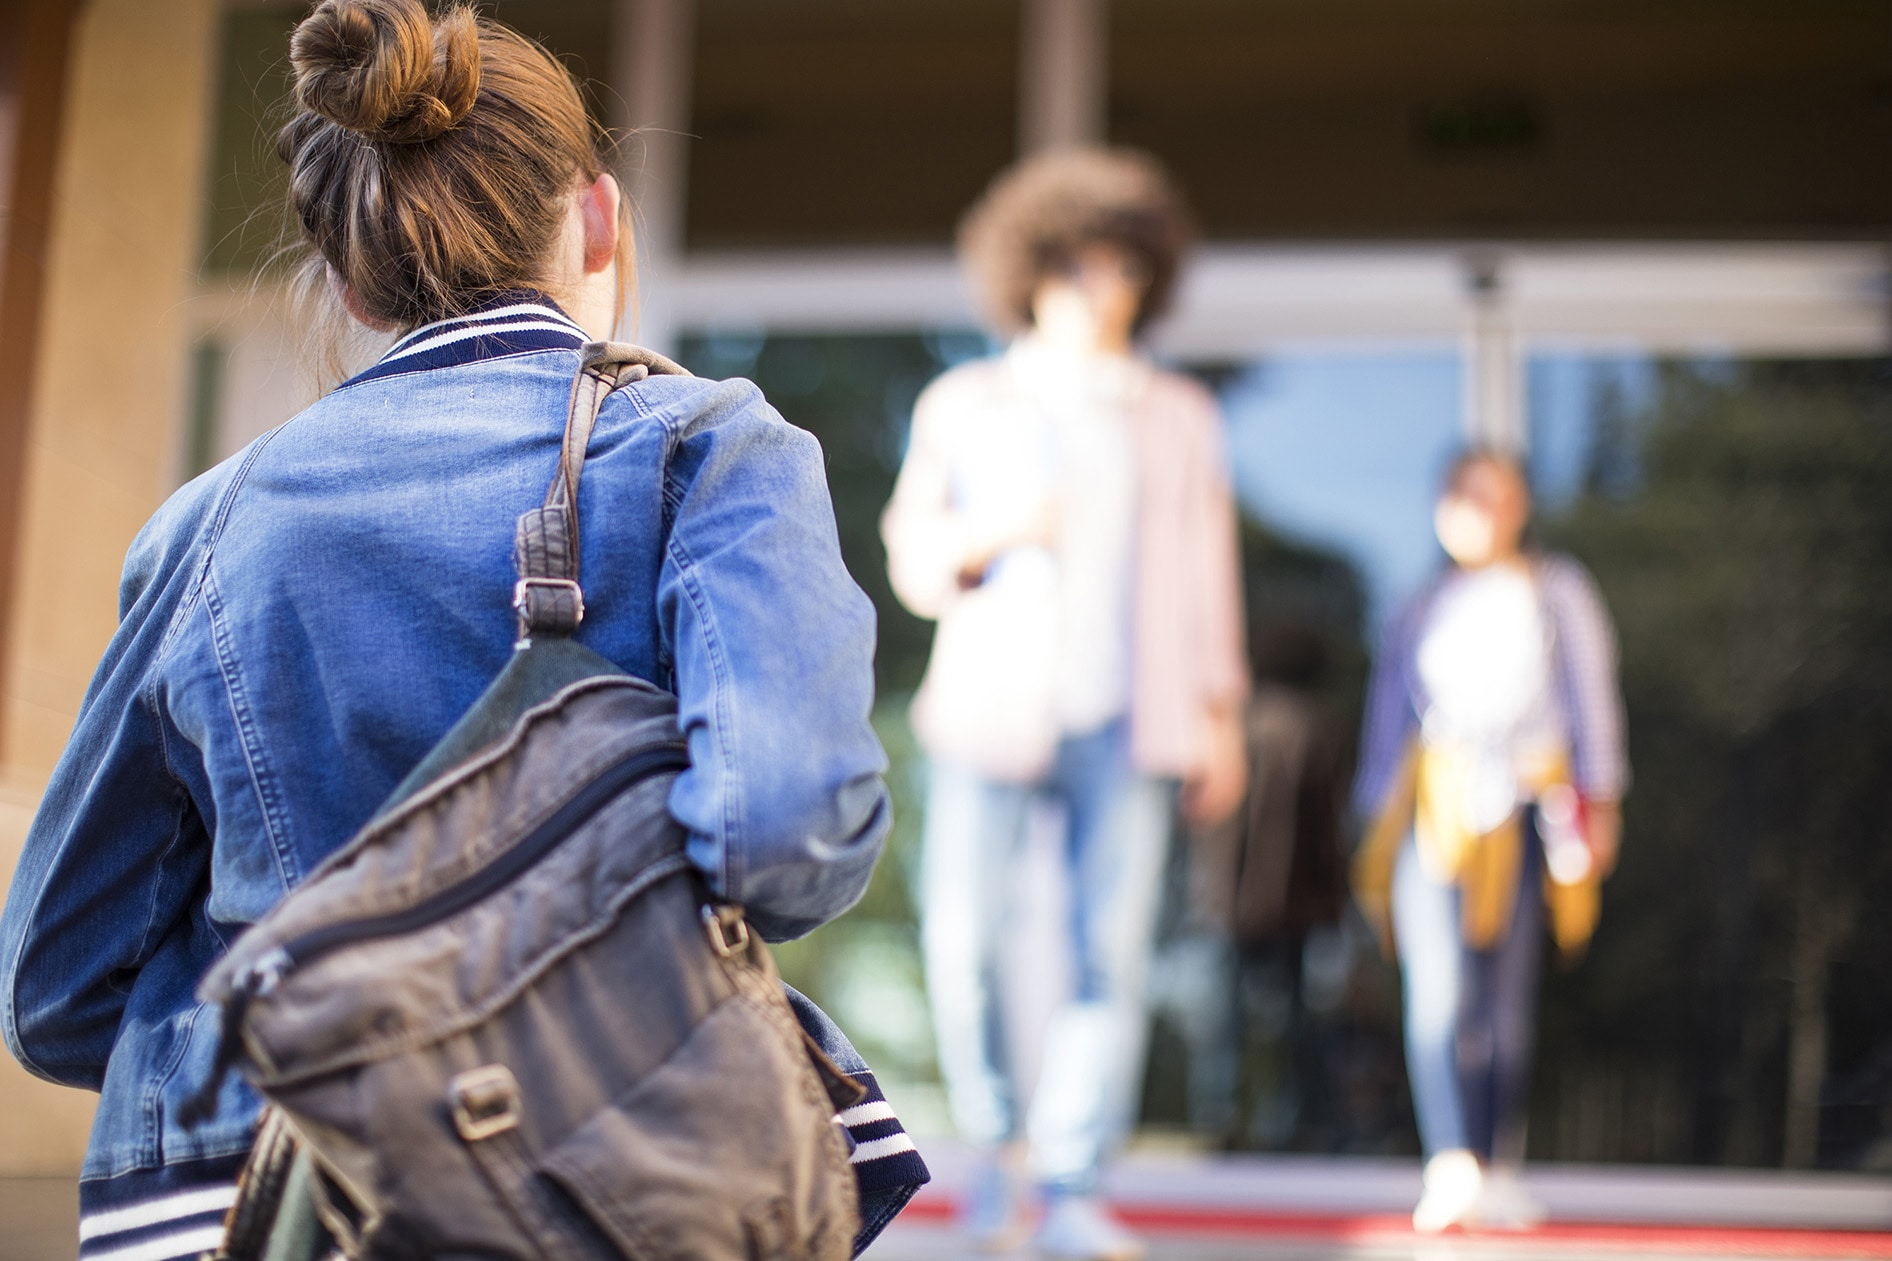 The back of a young girl walking forward carrying a school bag